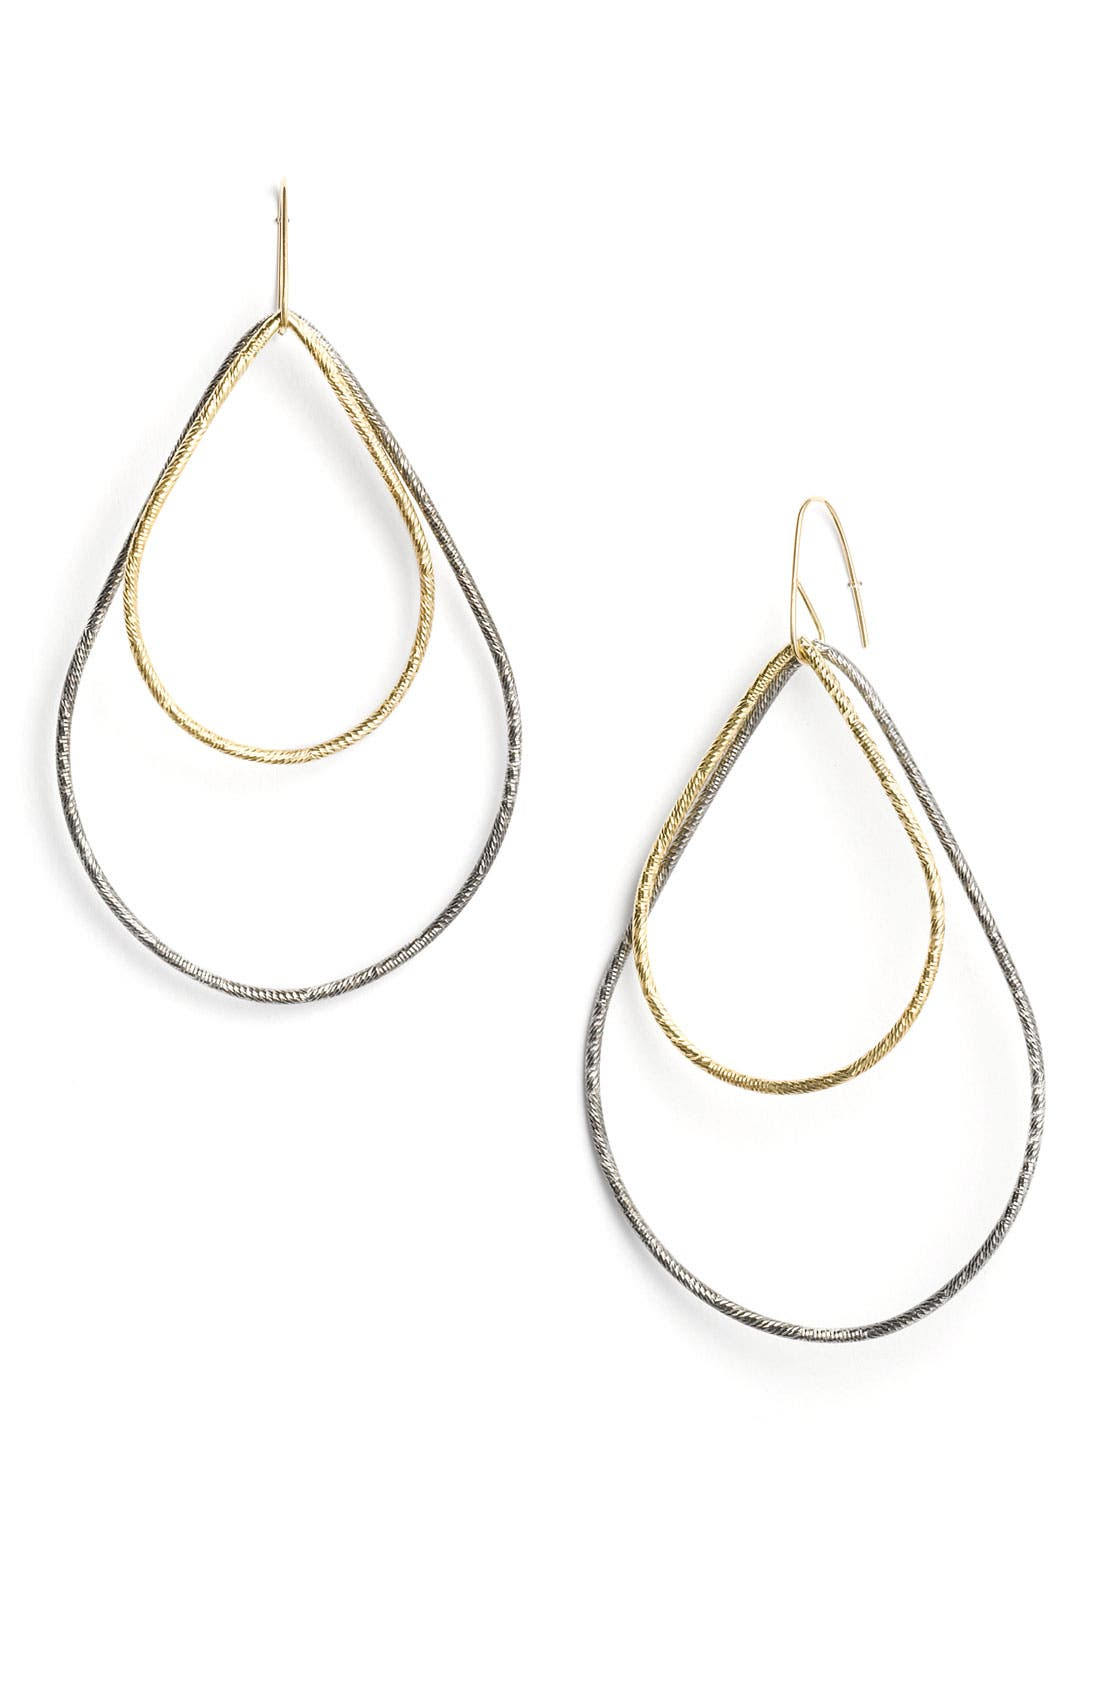 Alternate Image 1 Selected - Lana Jewelry Double Teardrop Earrings